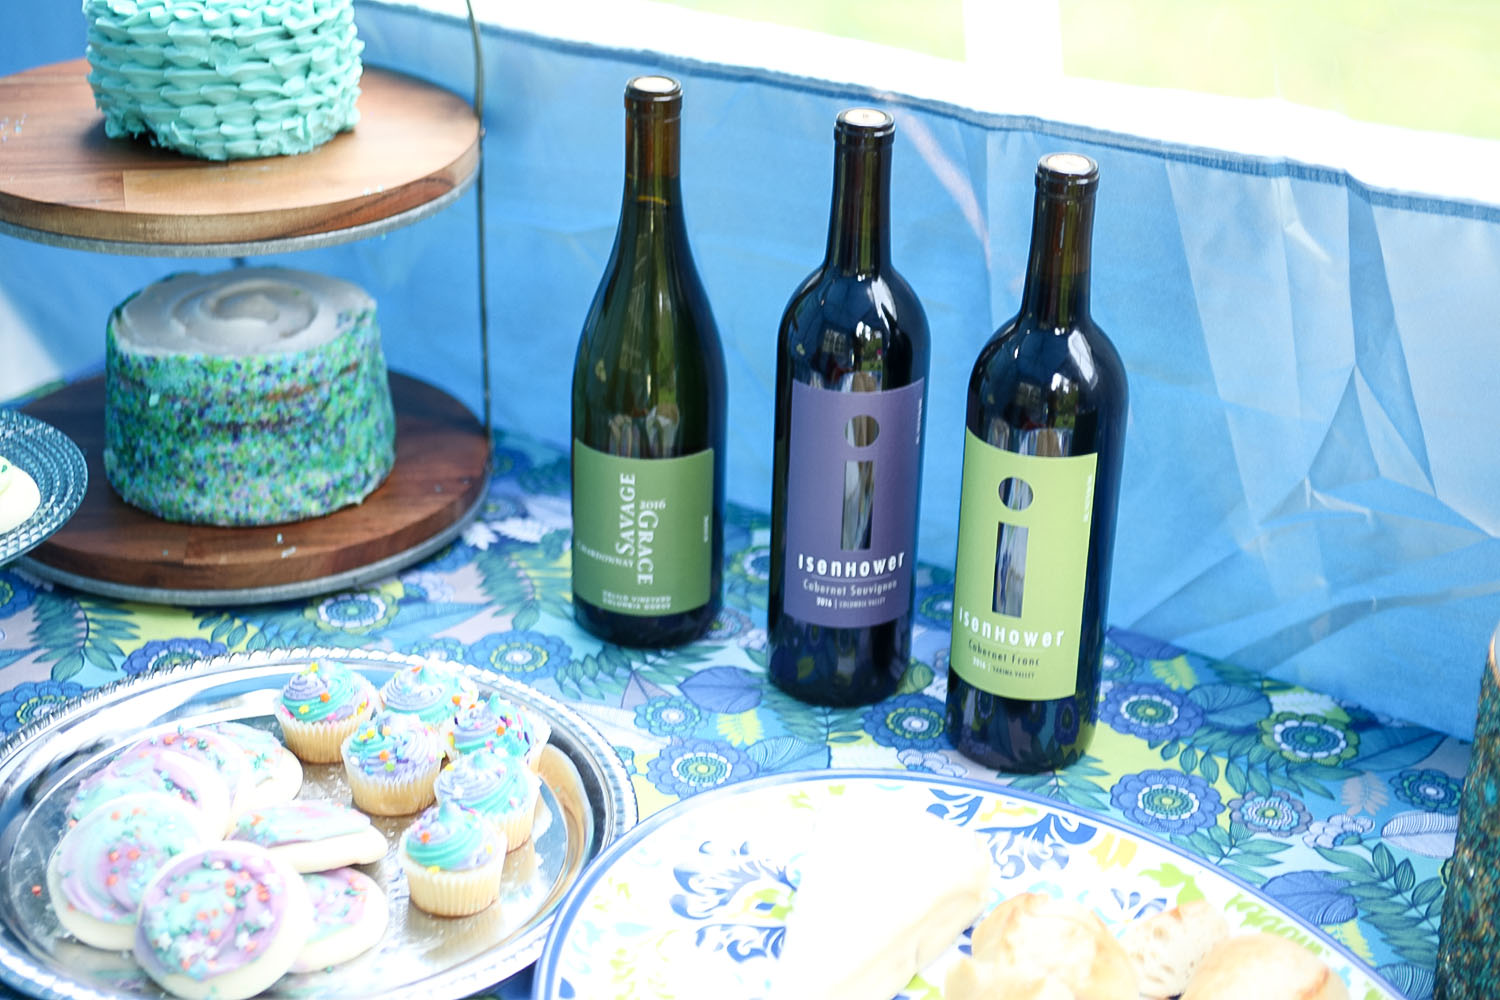 Magical Mermaid Desserts in a Mystical Tent at Our Wine Party - Woodinville Wine Blog & Magical Mermaid Desserts in a Mystical Tent at Our Wine Party ...